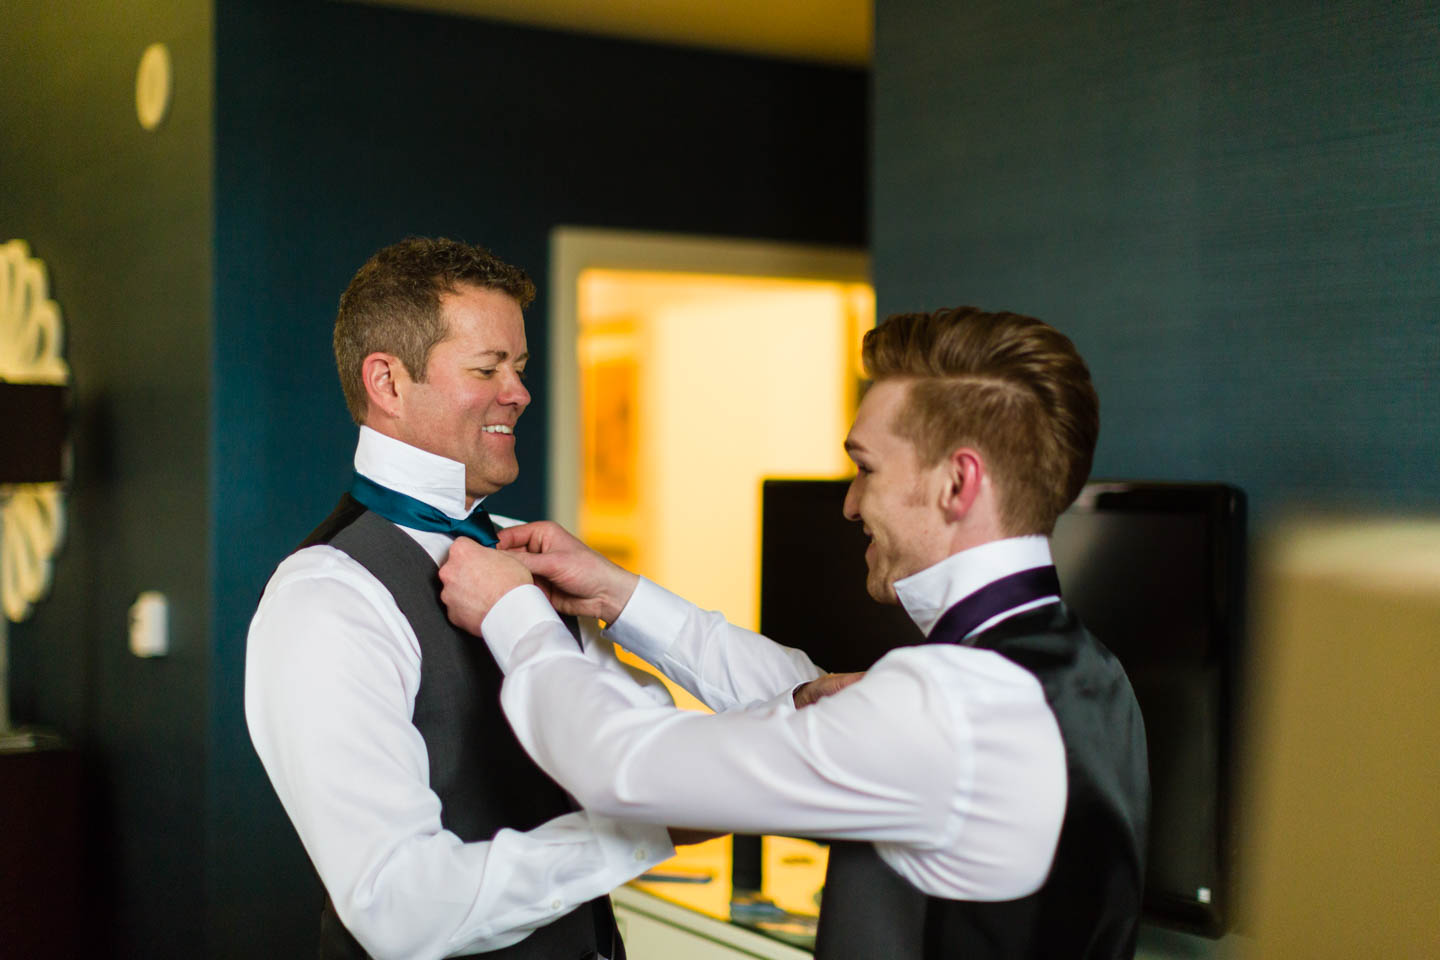 Grooms fix each other's tie